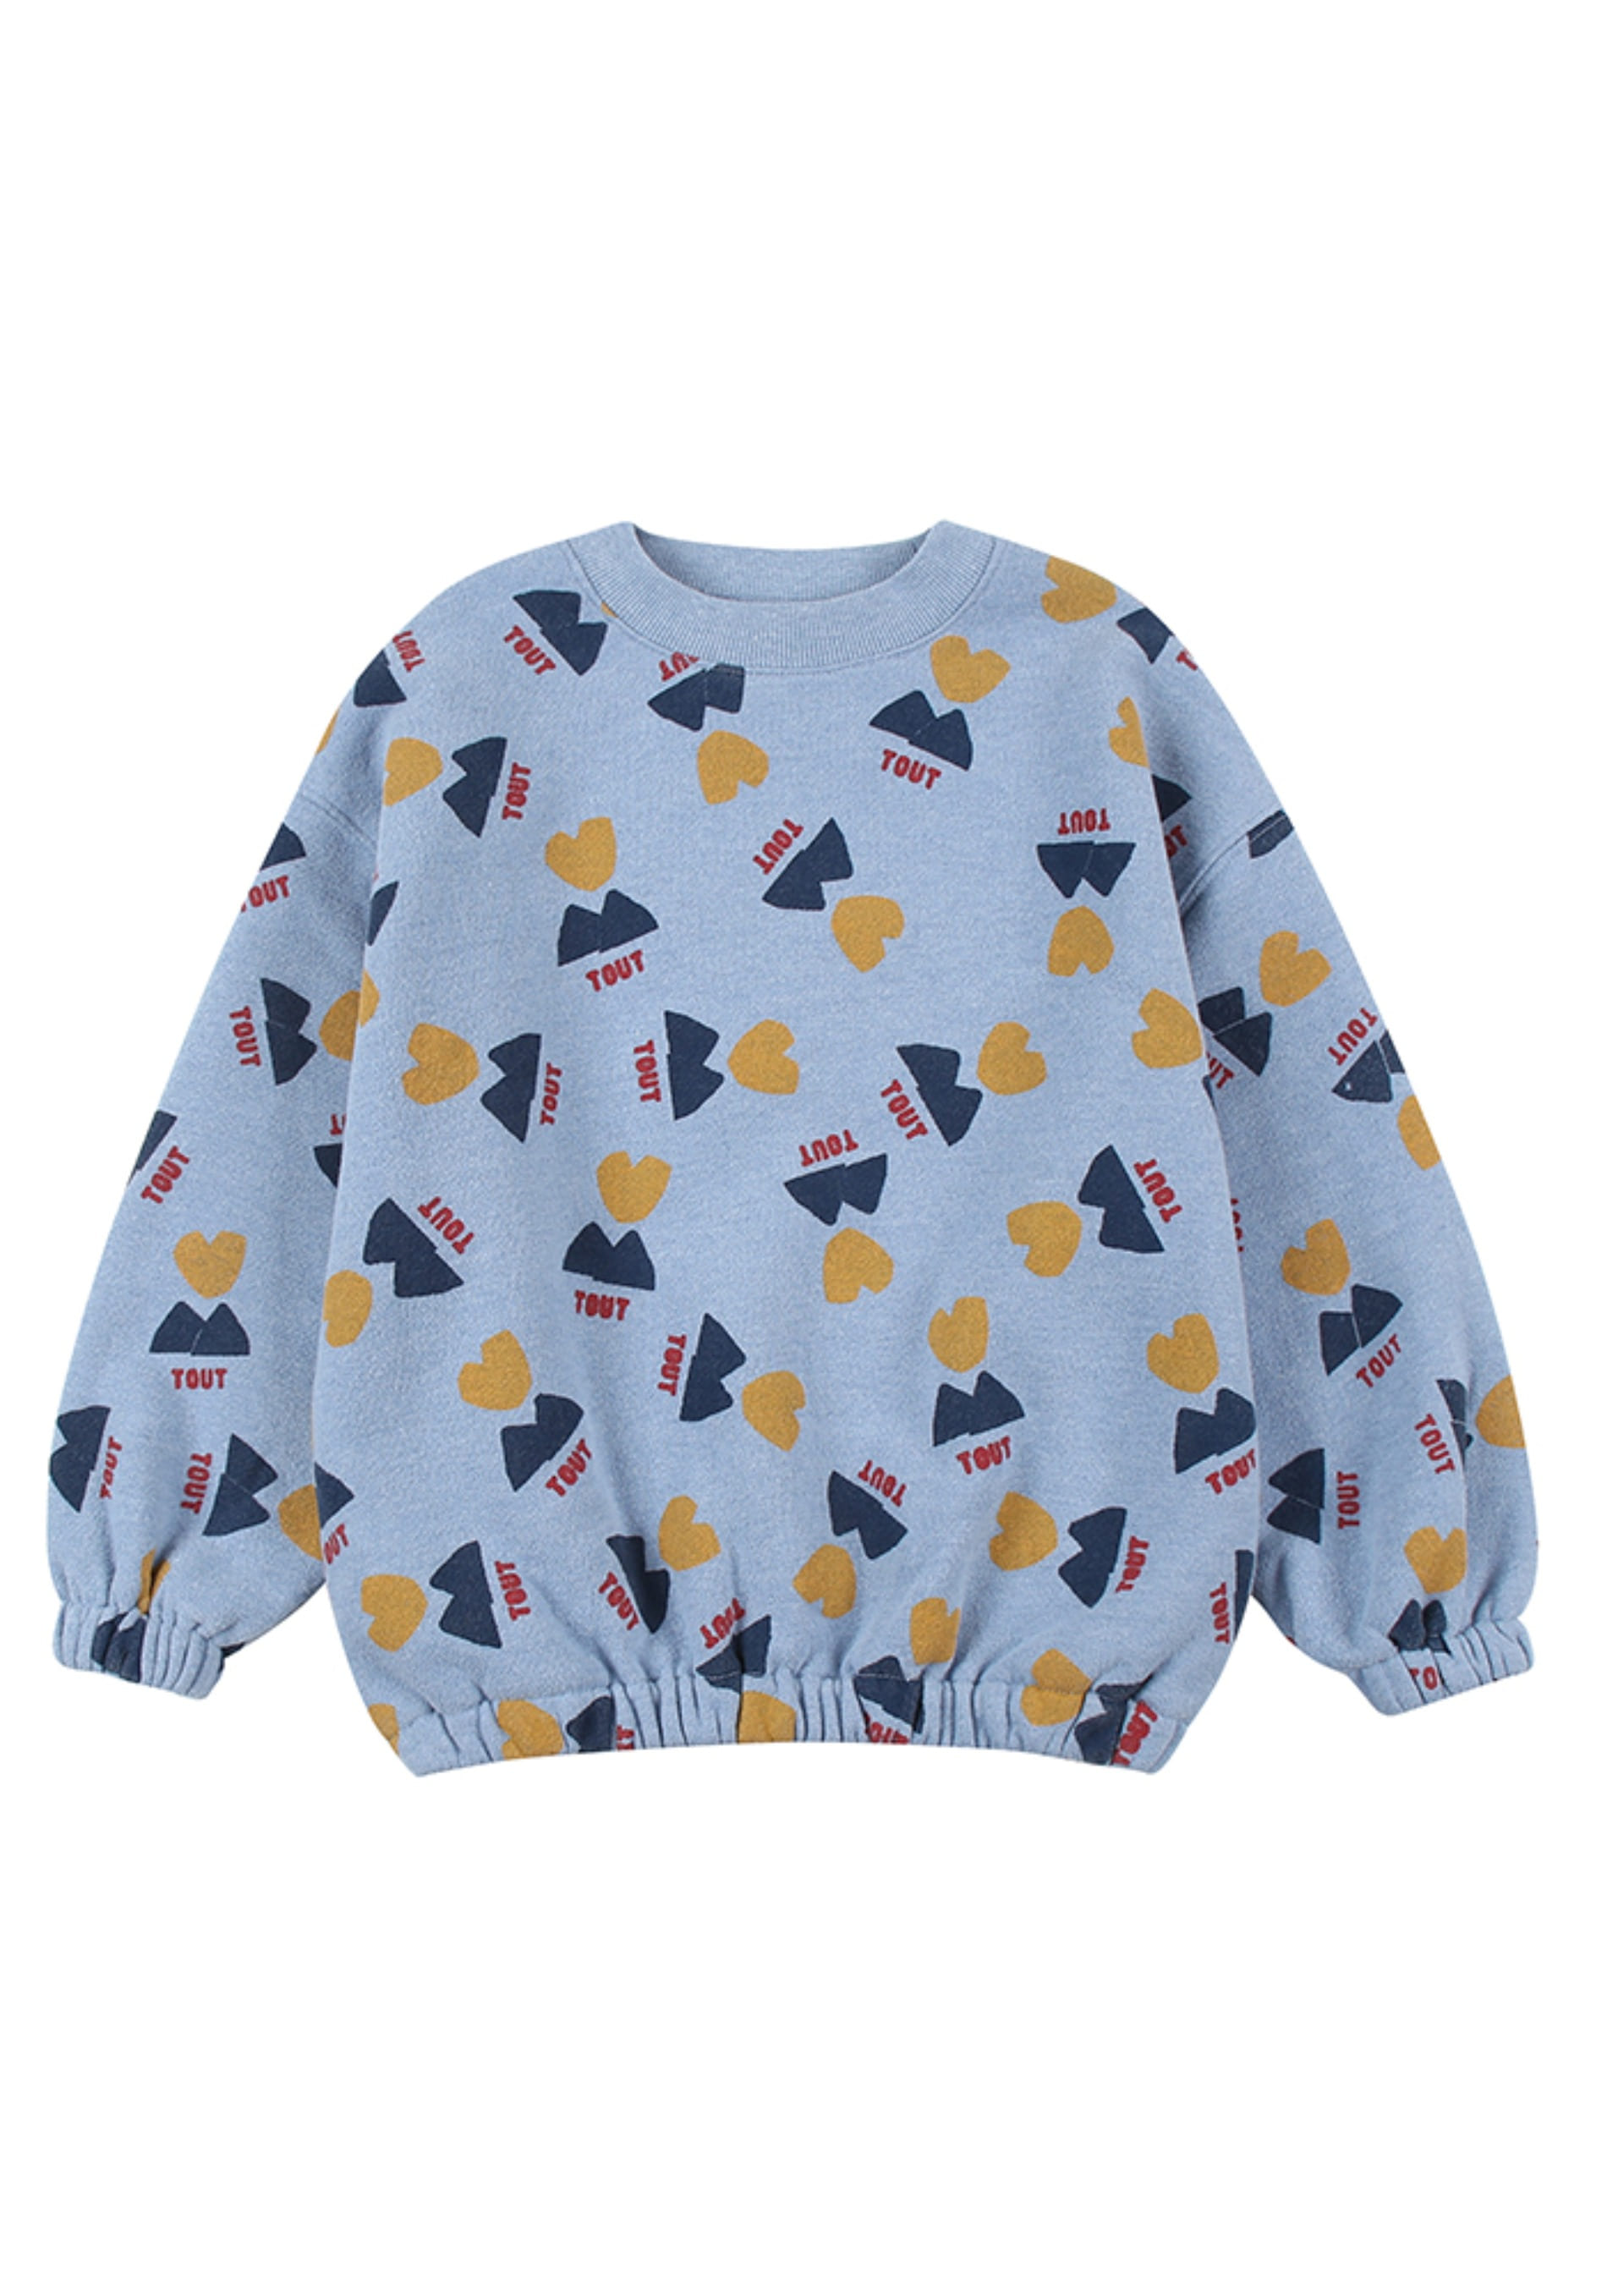 TOUT BAND SWEATSHIRT_Kids